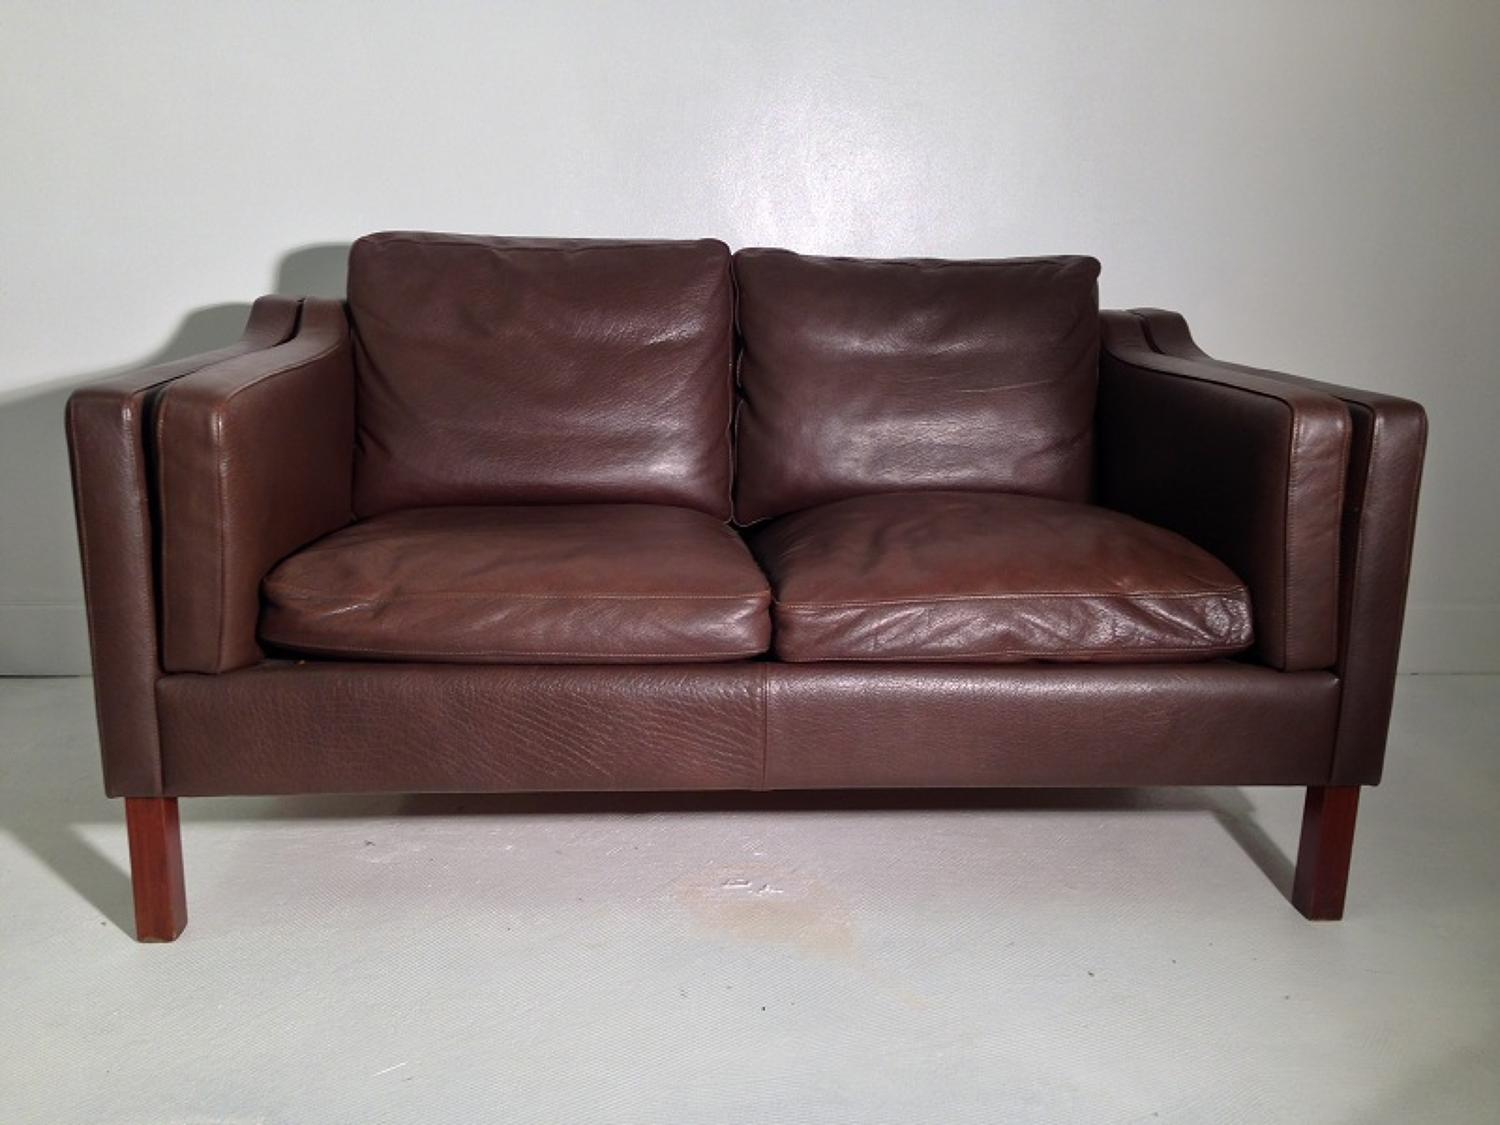 Danish two seater leather sofa